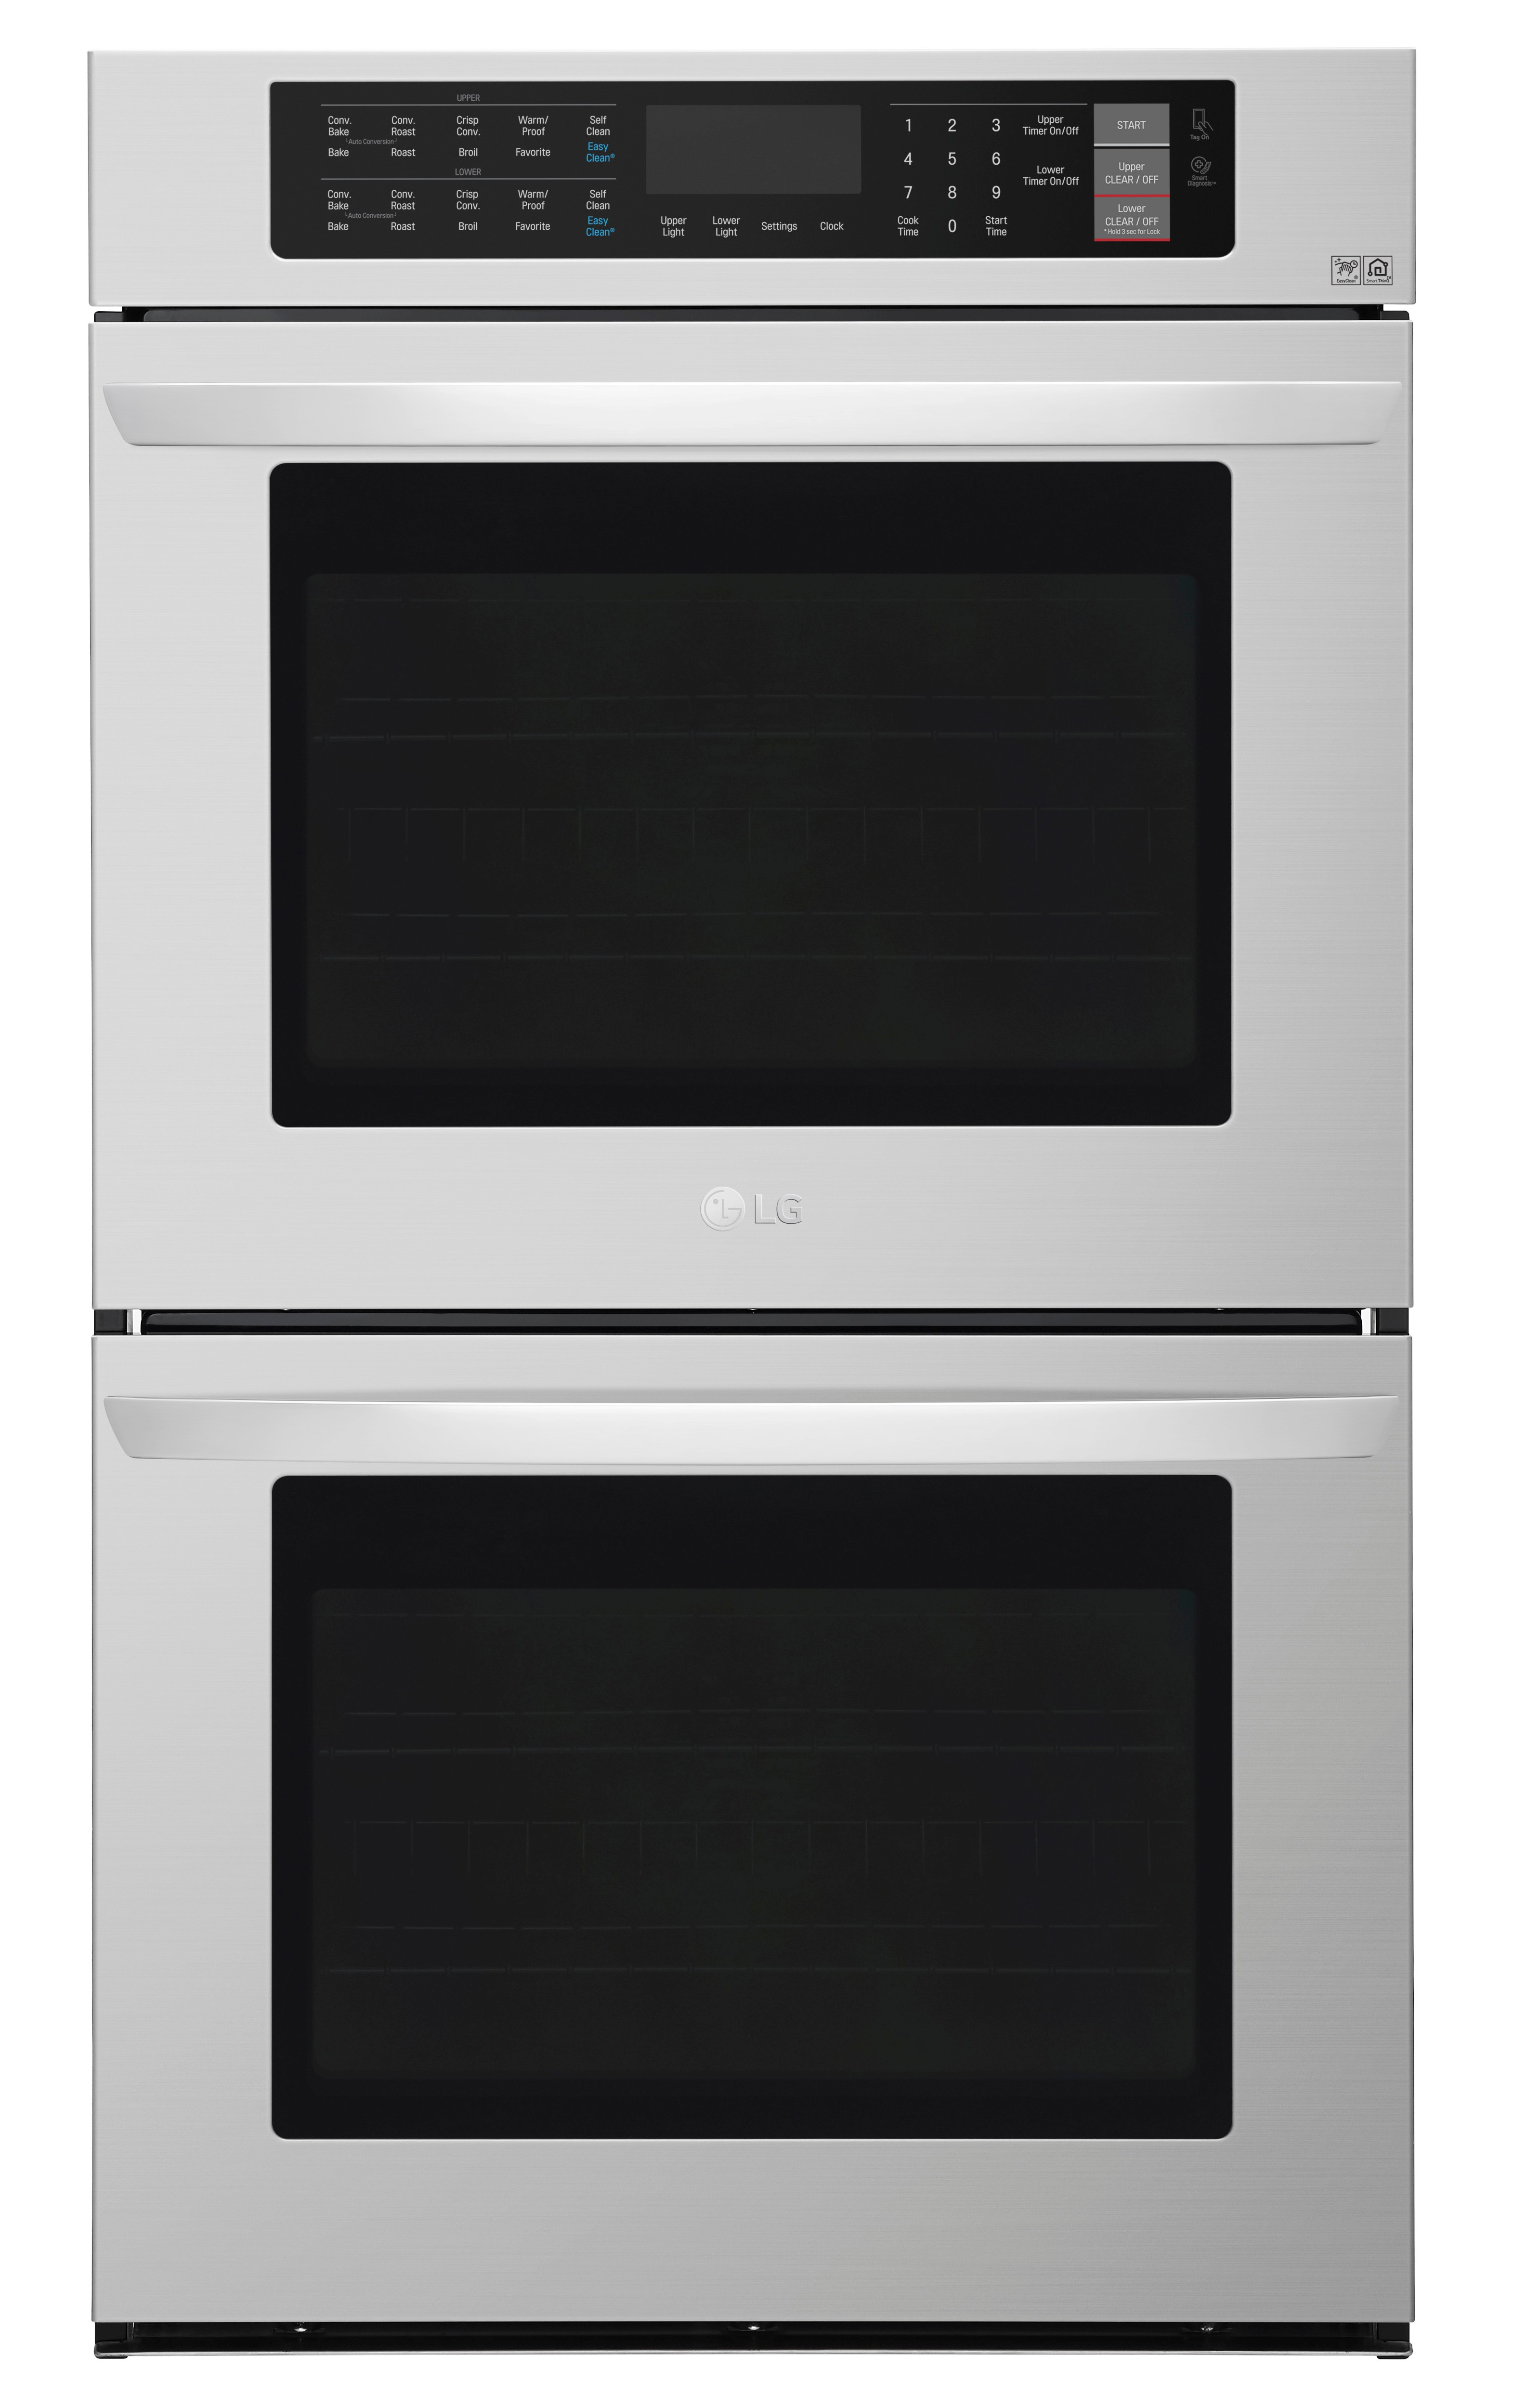 Genuine Hotpoint Oven Oven Timer Clock Display Programme